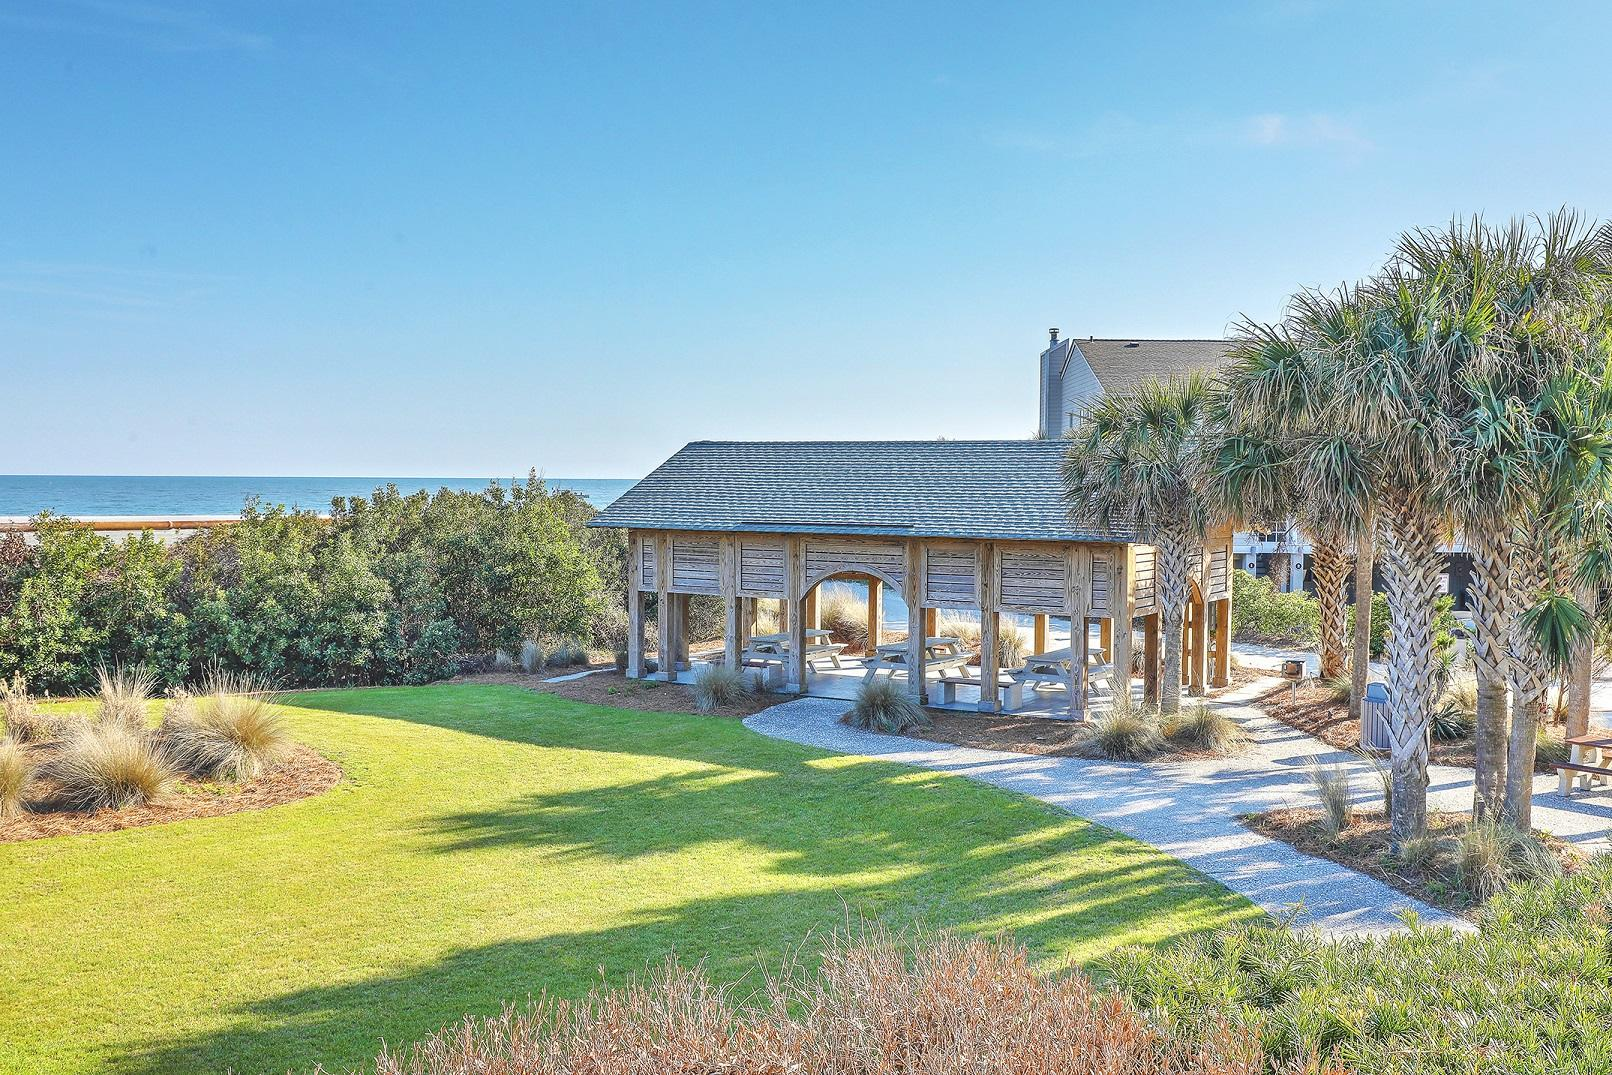 Wild Dunes Homes For Sale - 55 Seagrass, Isle of Palms, SC - 21